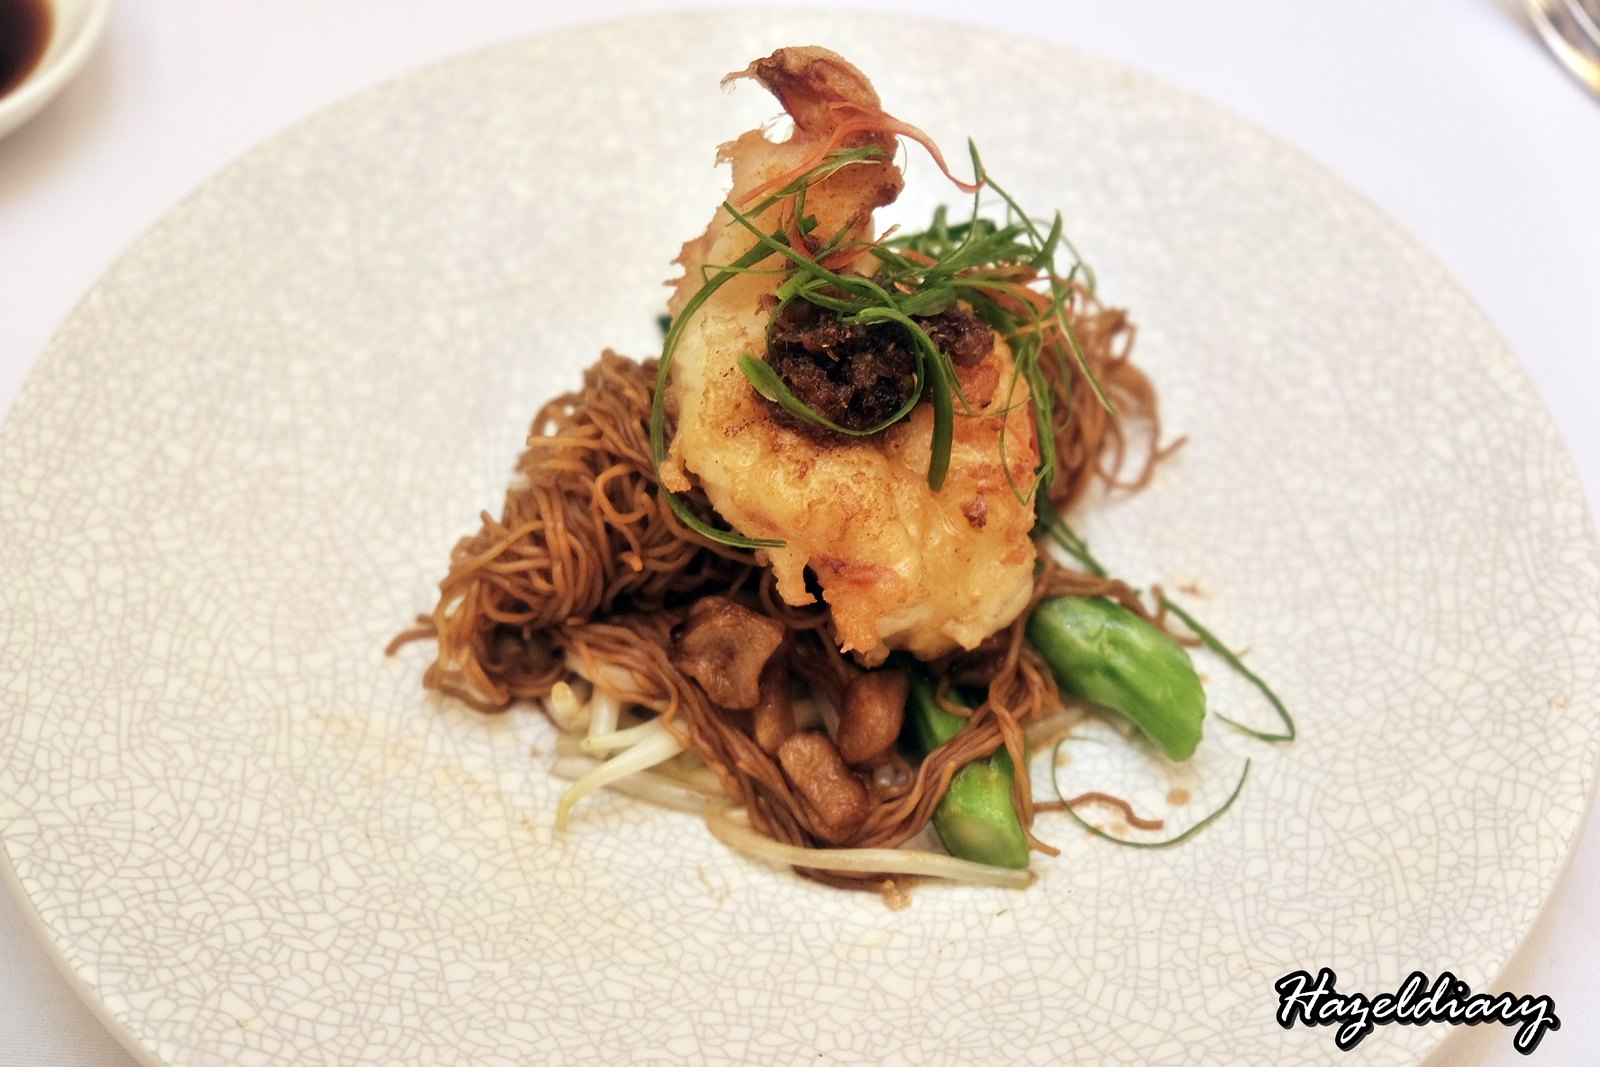 Crystal Jade Palace -Chef Martin Foo - 6 course menu-Pan-seared prawn and egg noodles with pork lardons